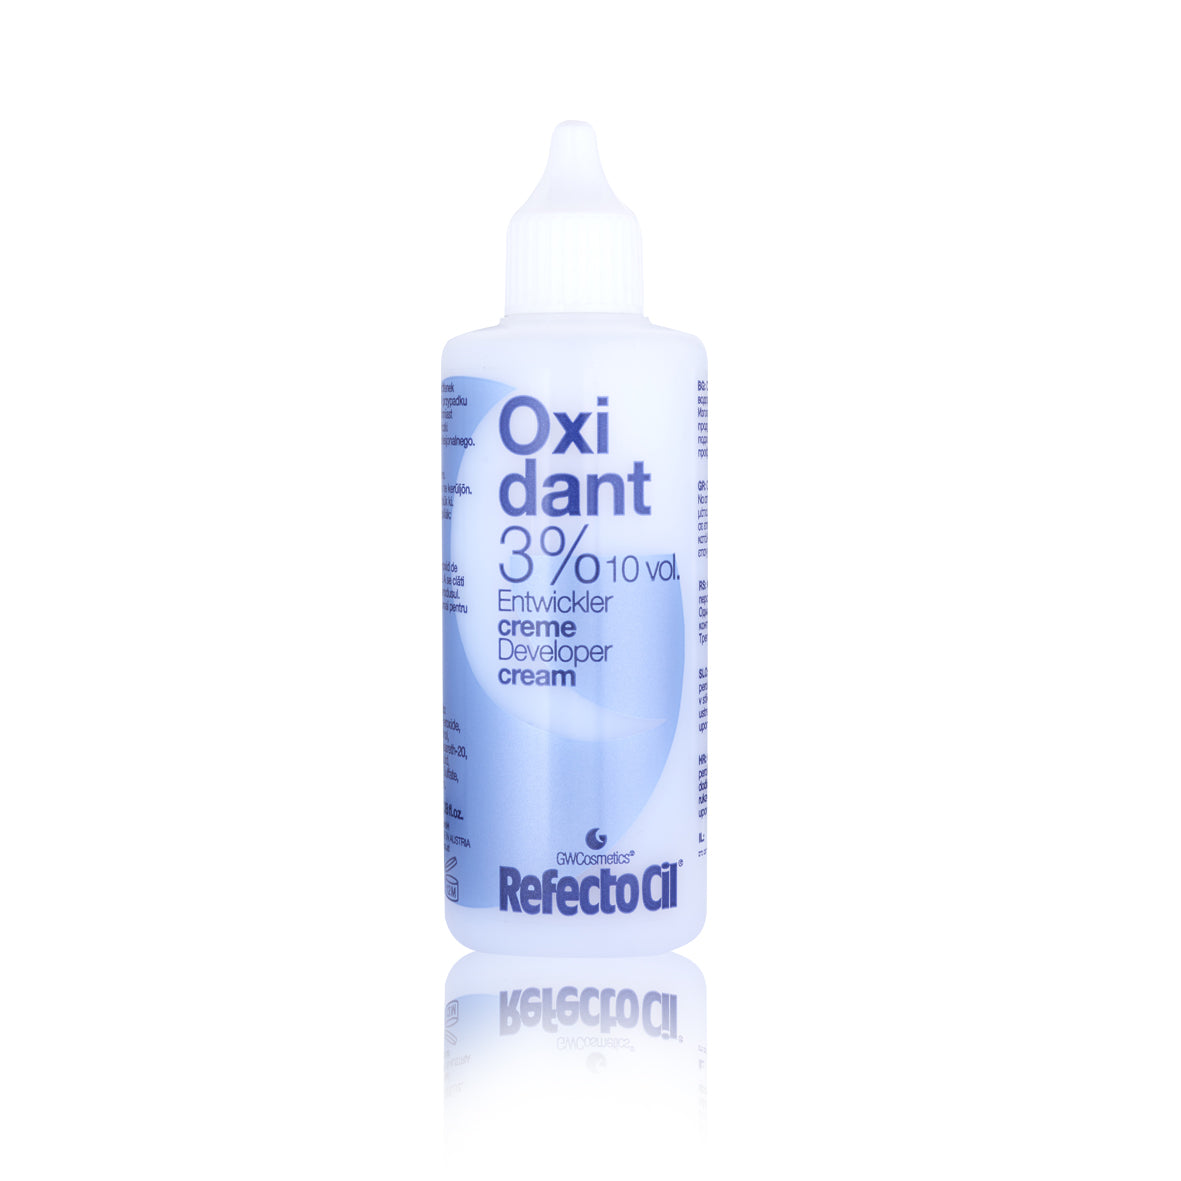 RefectoCil Oxidant 3%